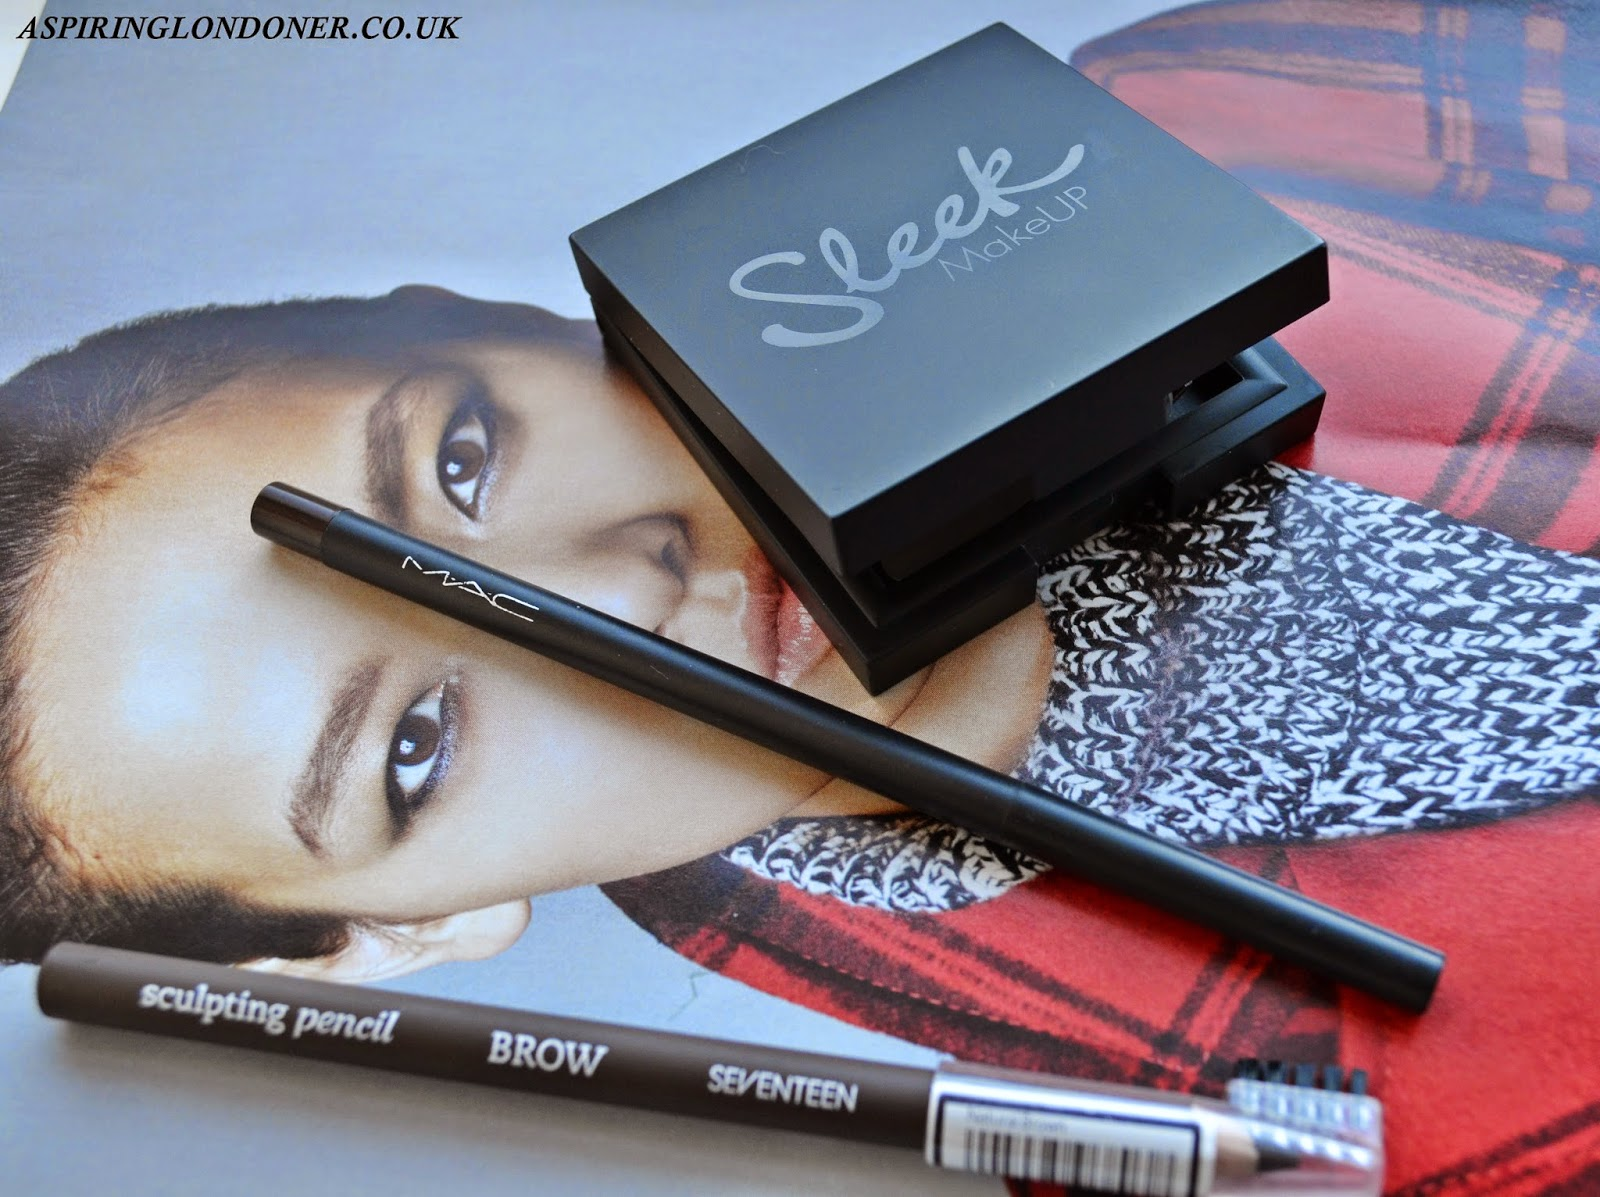 Brows 101 ft. Sleek Makeup Brow Kit, MAC Eyebrow Pencil, Seventeen Sculpting Brow Pencil Review - Aspiring Londoner